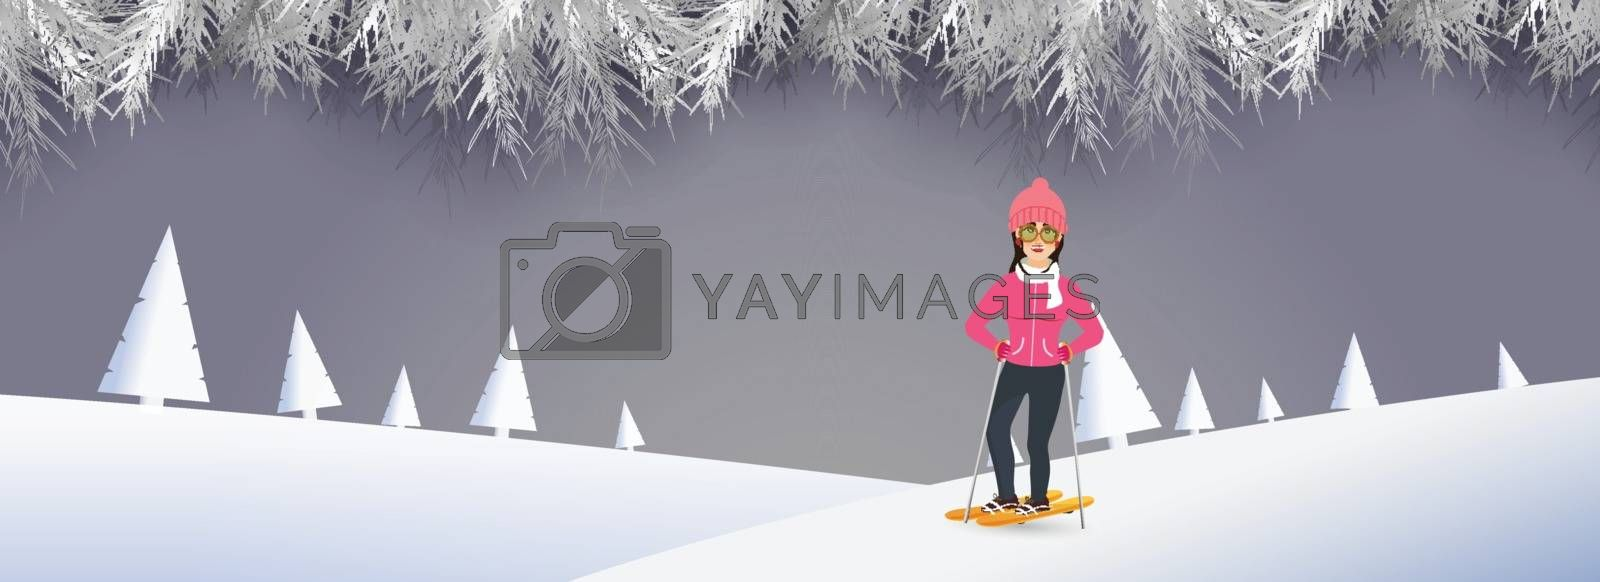 Happy Winter header or banner design with illustration of girl skating on snowy mountain background.